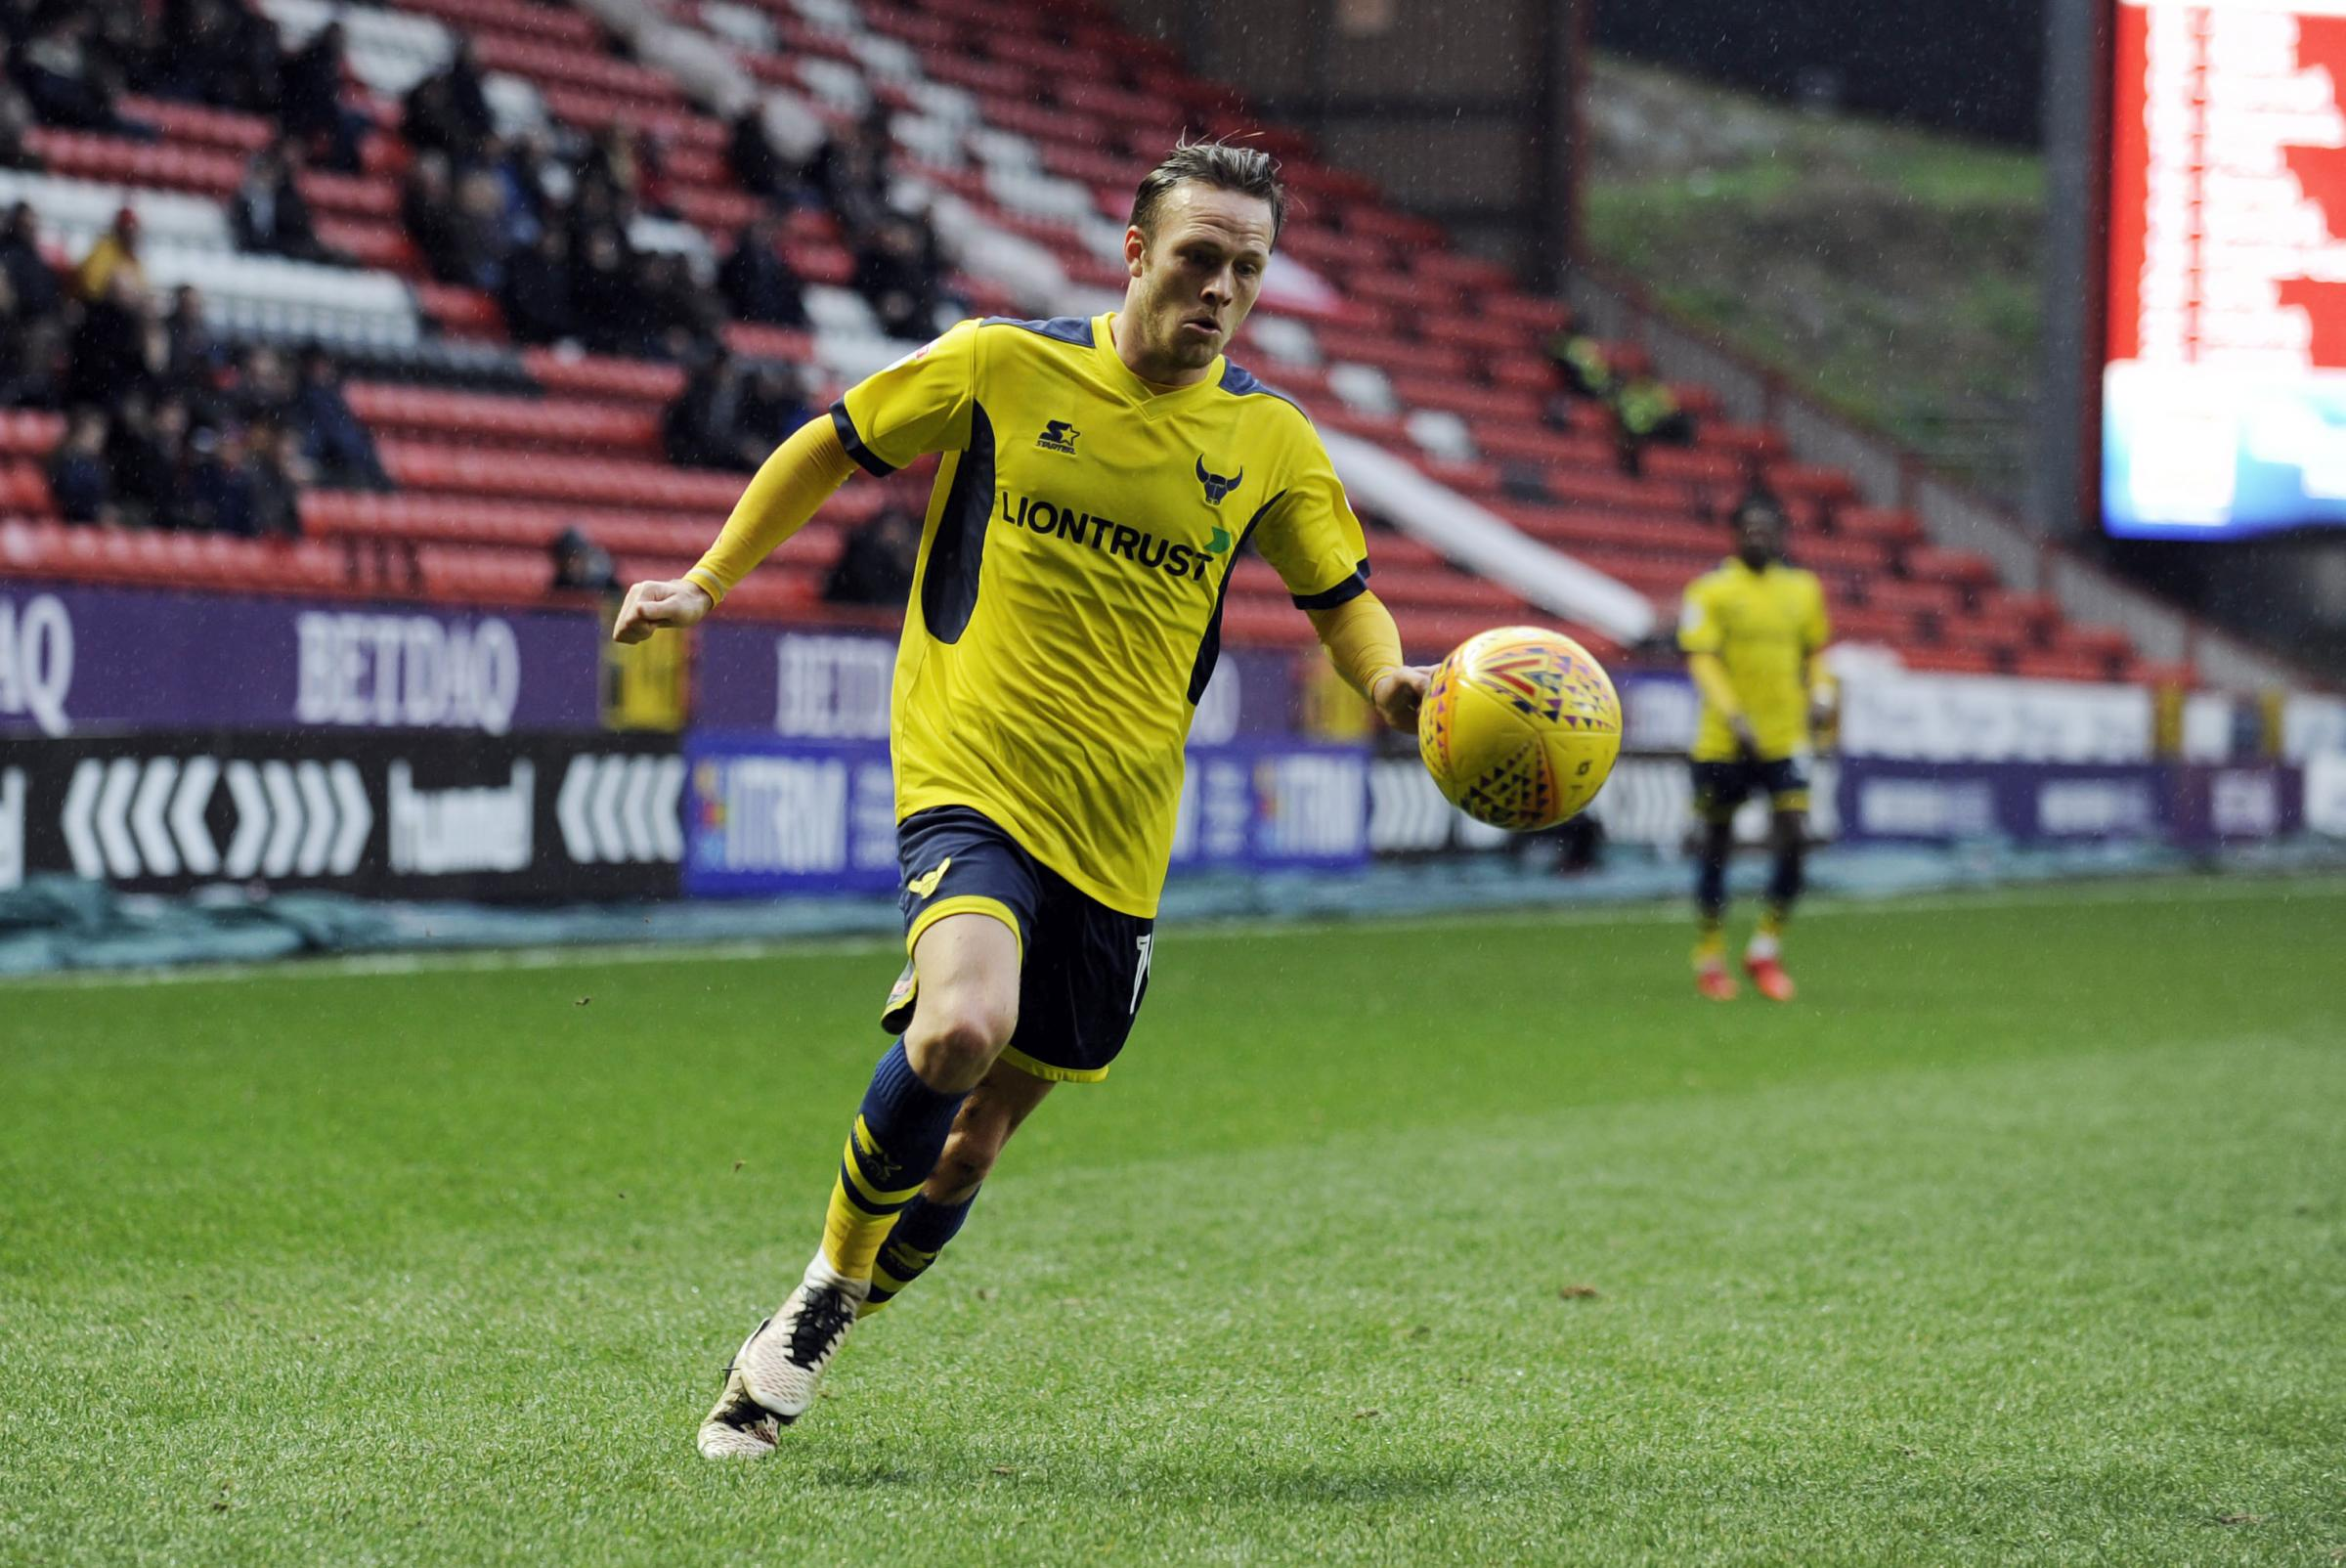 OPTIONS: Oxford United are not ruling out bringing Todd Kane back to the club, but boss Karl Robinson, who signed Cameron Norman this week, says he needs a decision on another right back before the start of pre-season